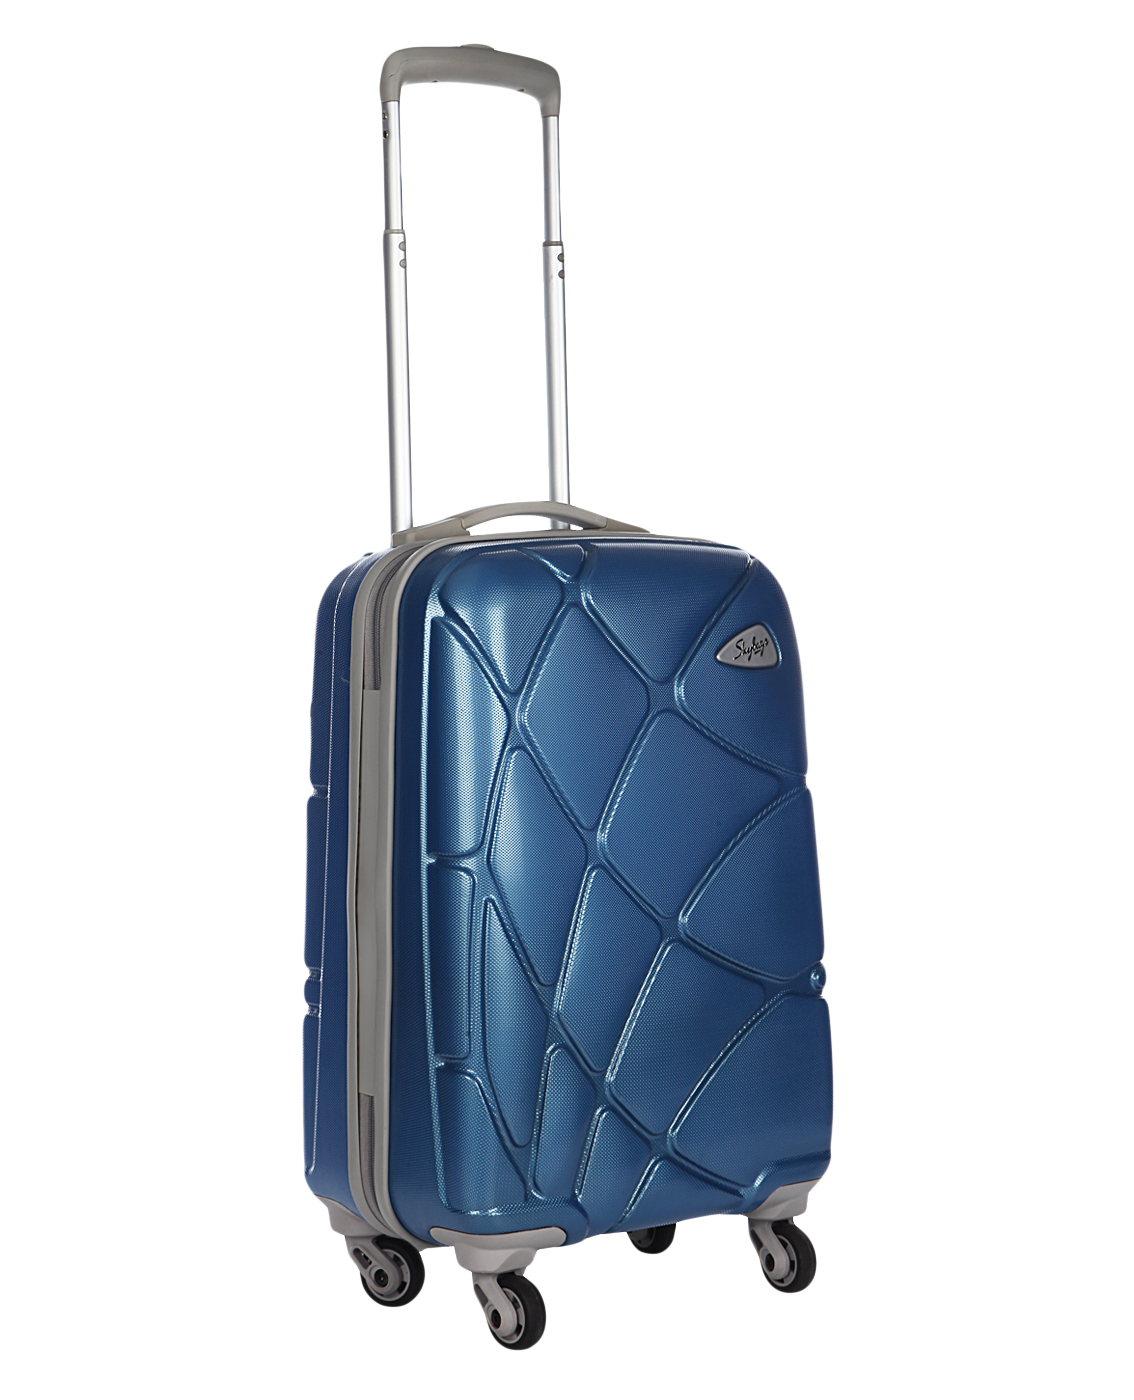 Strolley Suitcase Luggage PNG Transparent Image - Suitcase PNG